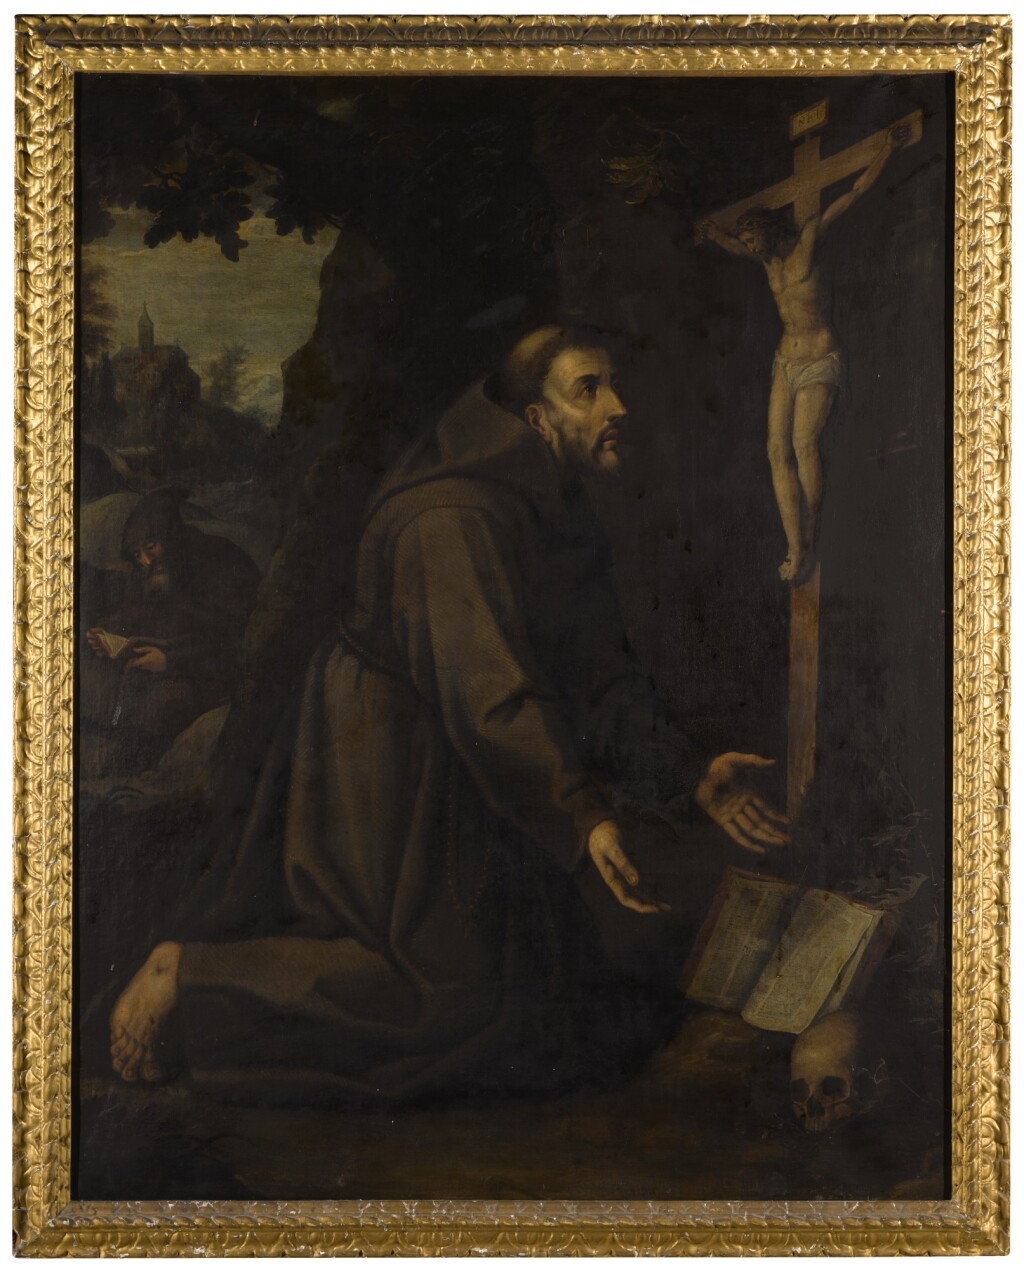 HISPANO FLEMISH SCHOOL, SECOND QUARTER OF 17TH CENTURY | Saint Francis kneeling before a crucifix